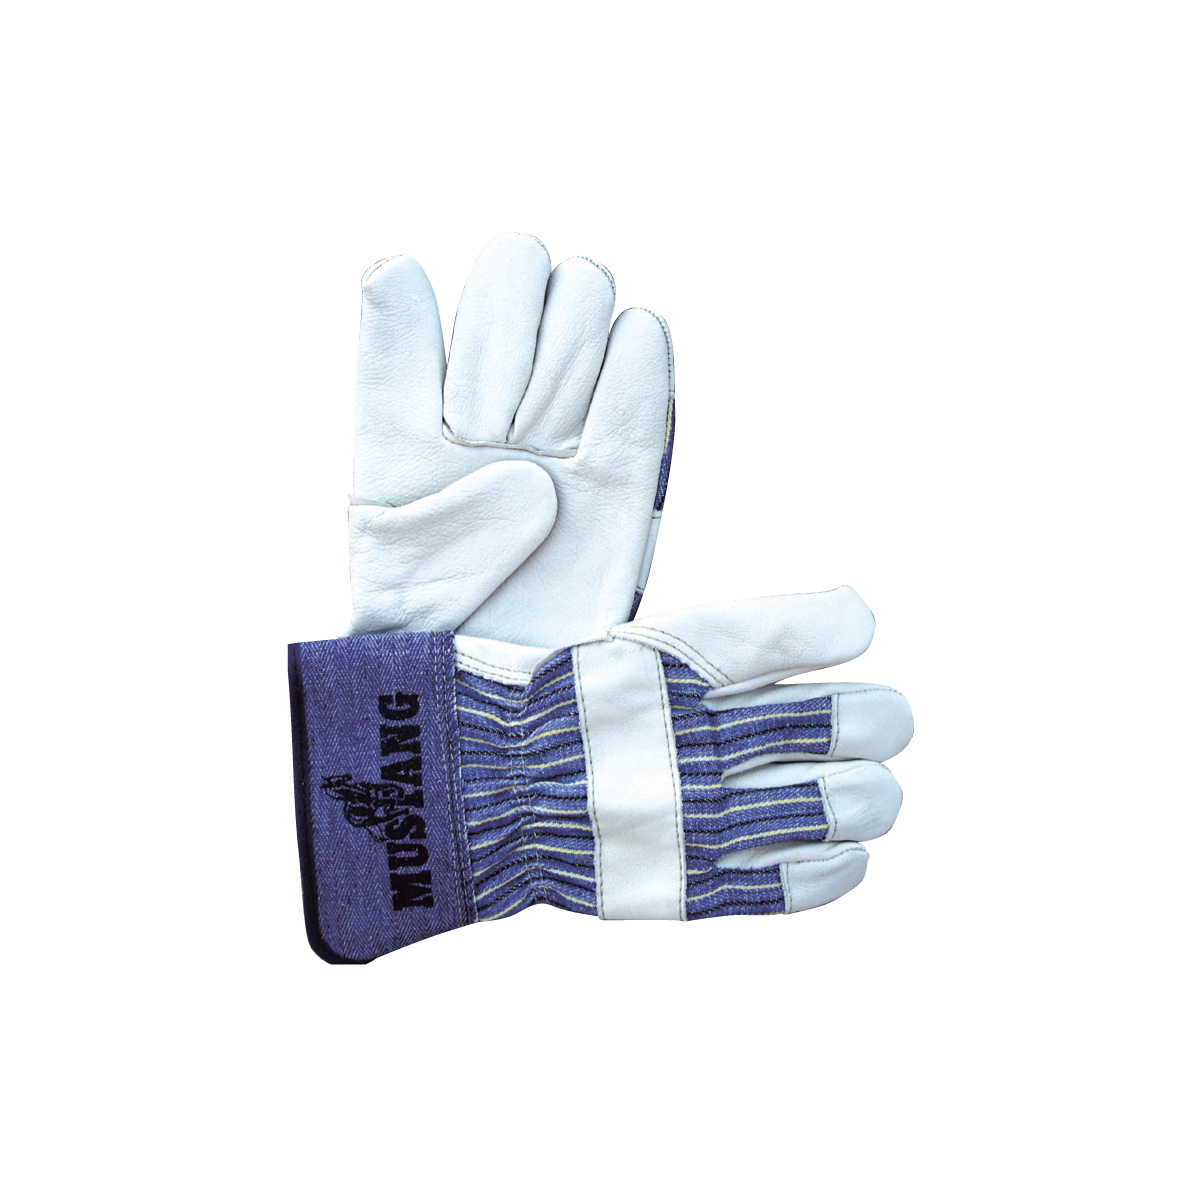 Grain Leather Palms Gloves 2